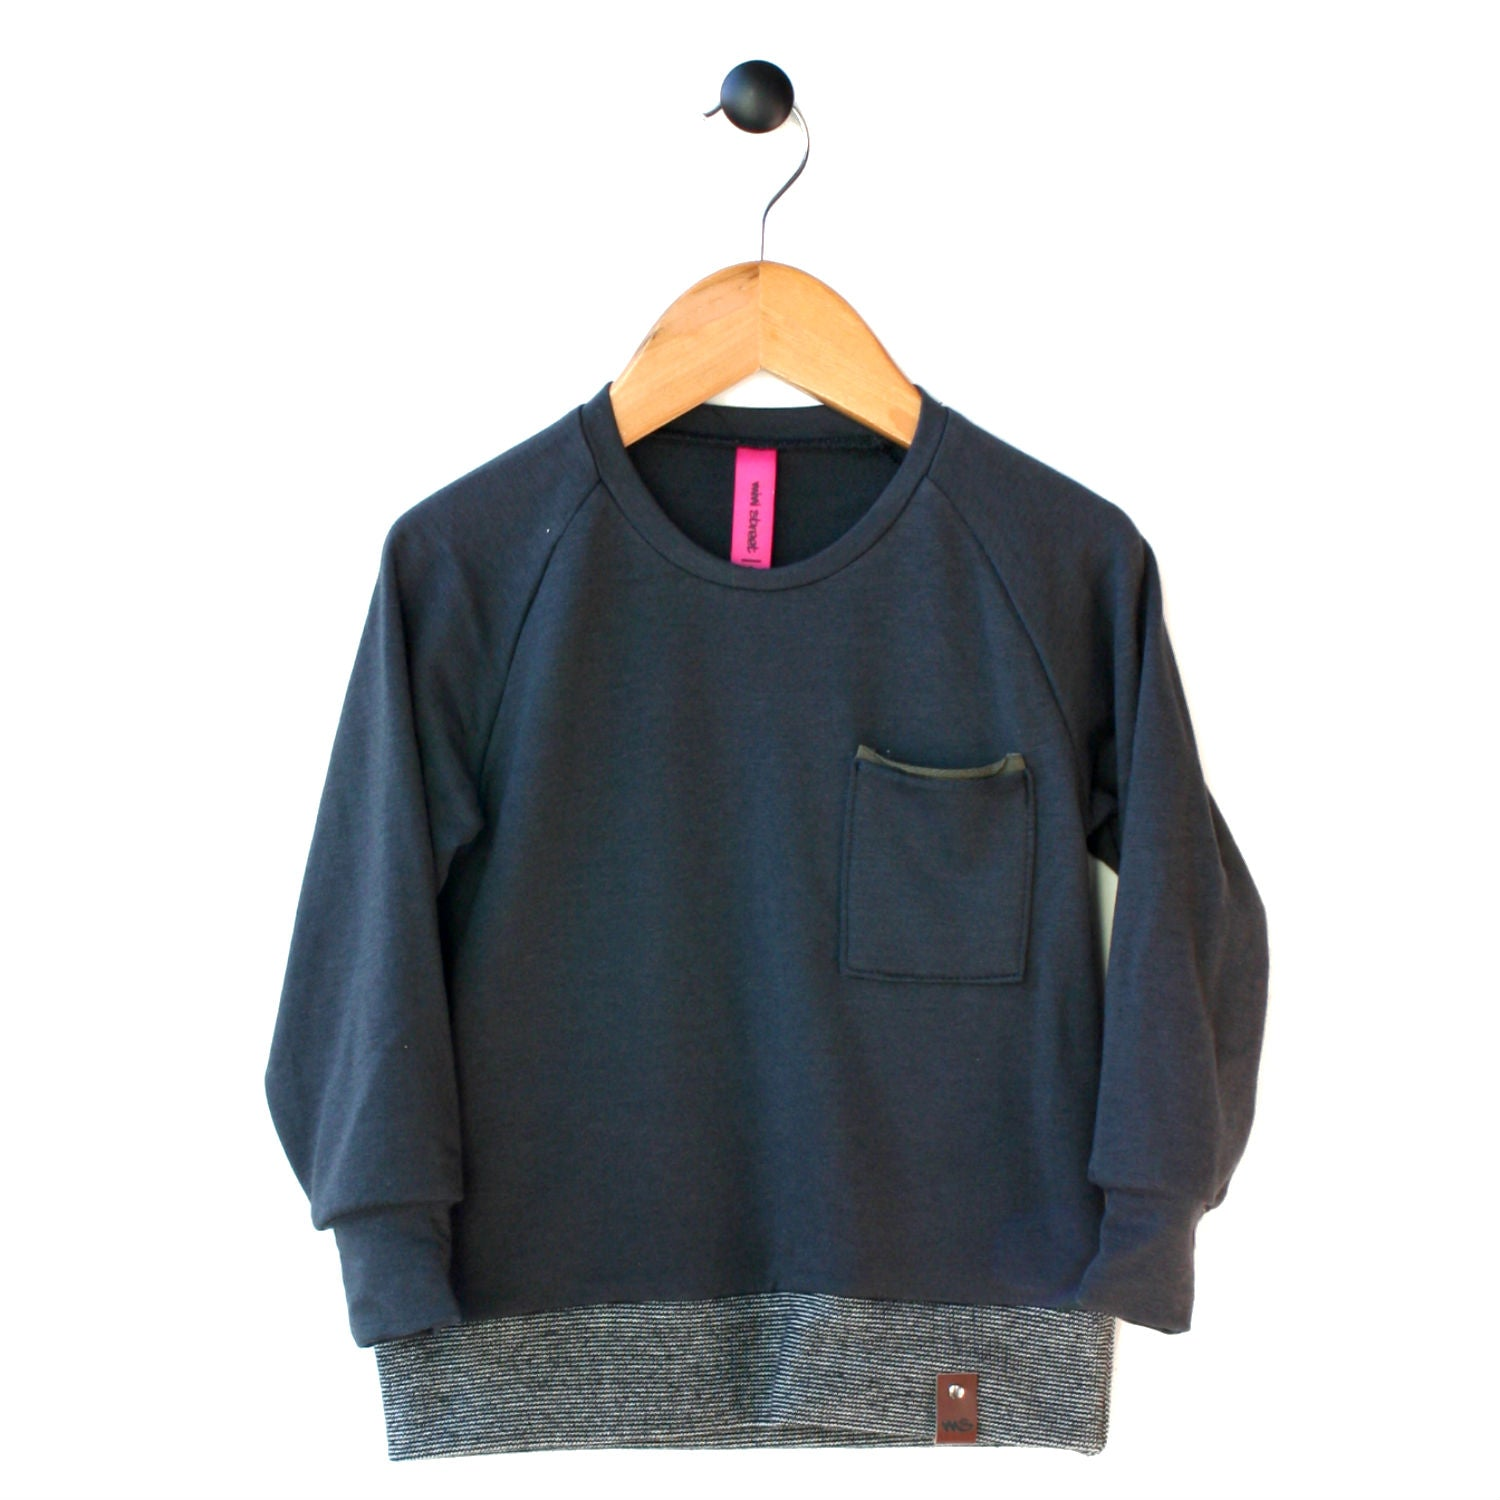 Day 2: Jaxon Crew Shirt - Charcoal